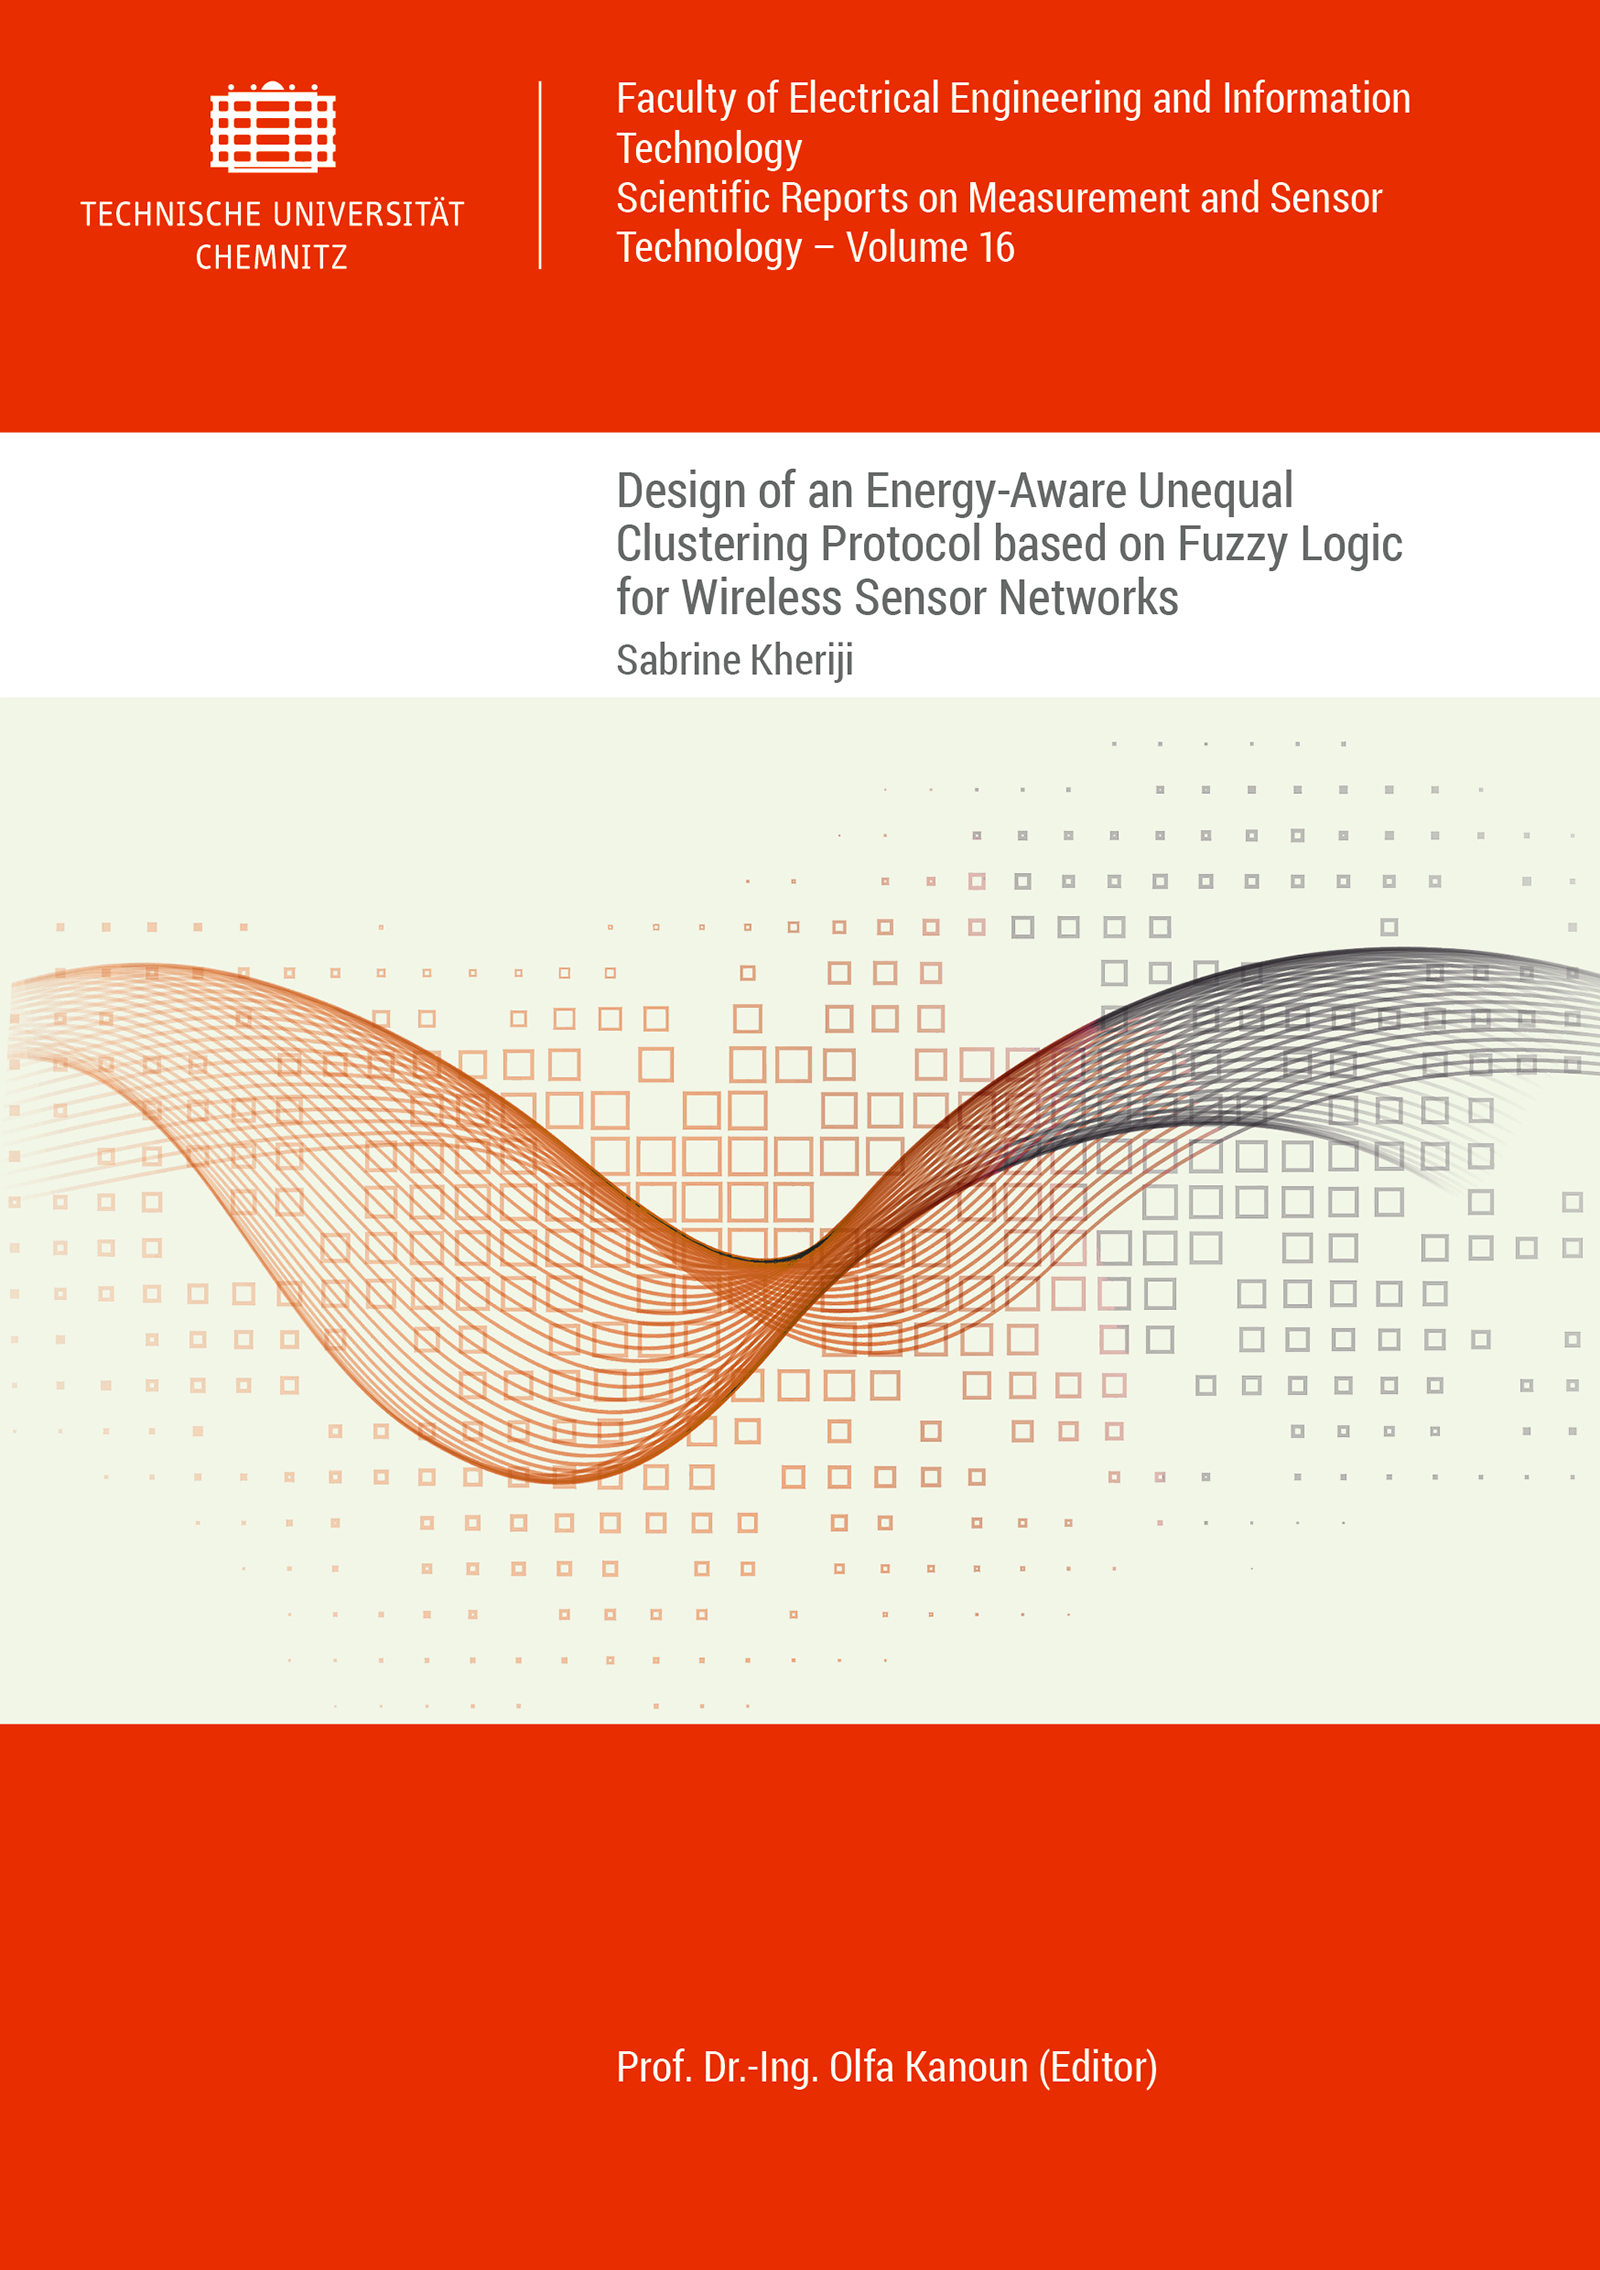 Cover: Design of an Energy-Aware Unequal Clustering Protocol based on Fuzzy Logic for Wireless Sensor Networks